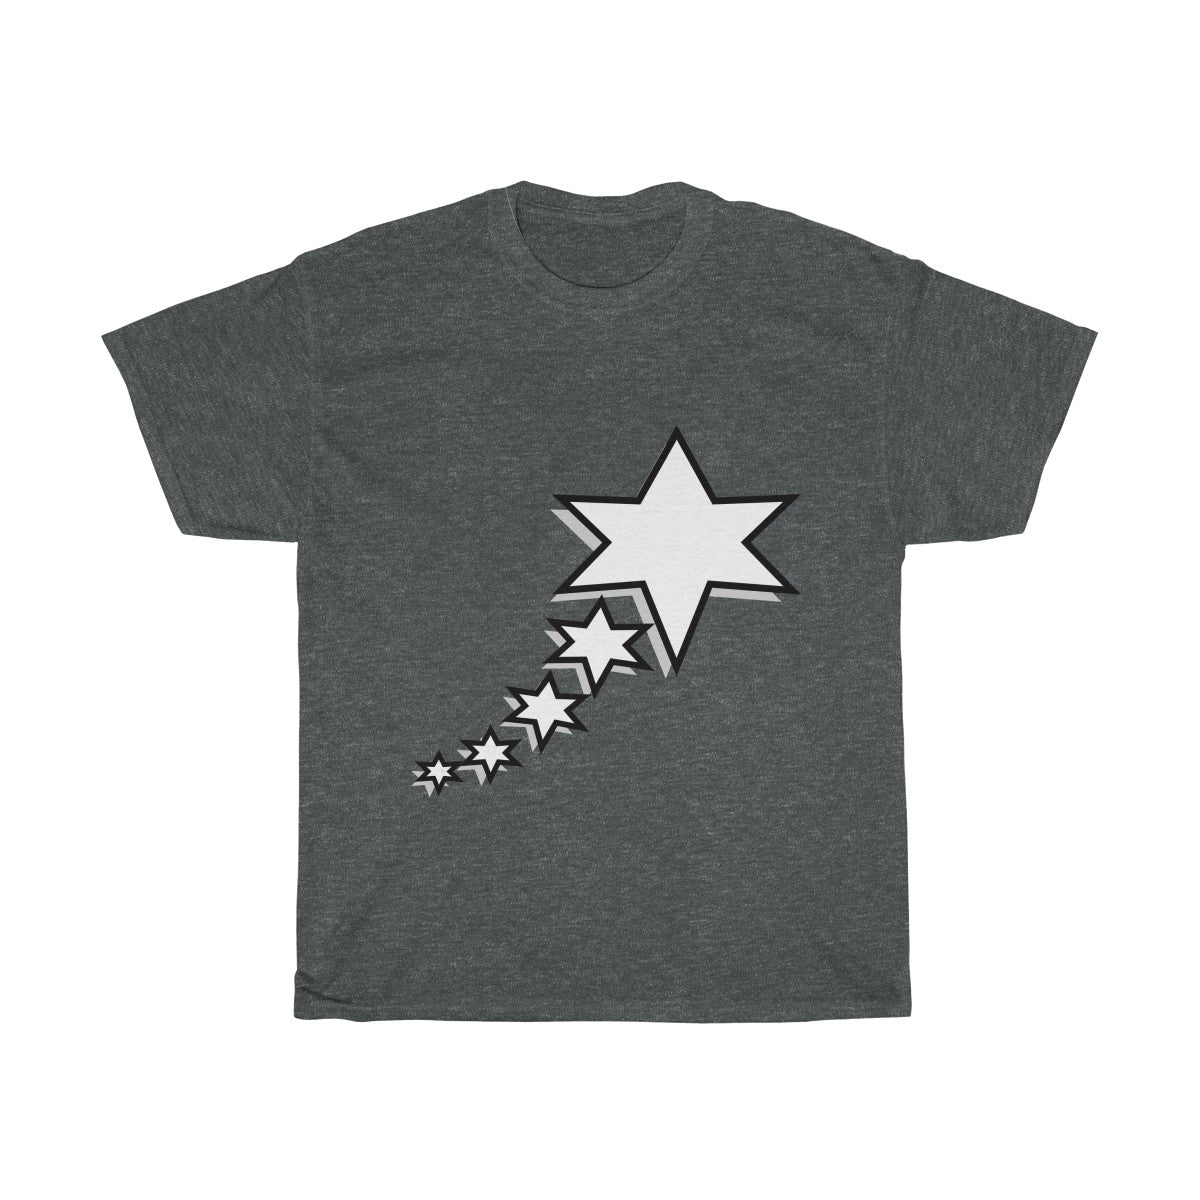 Unisex Heavy Cotton Tee - 6 Points 5 Stars (White)